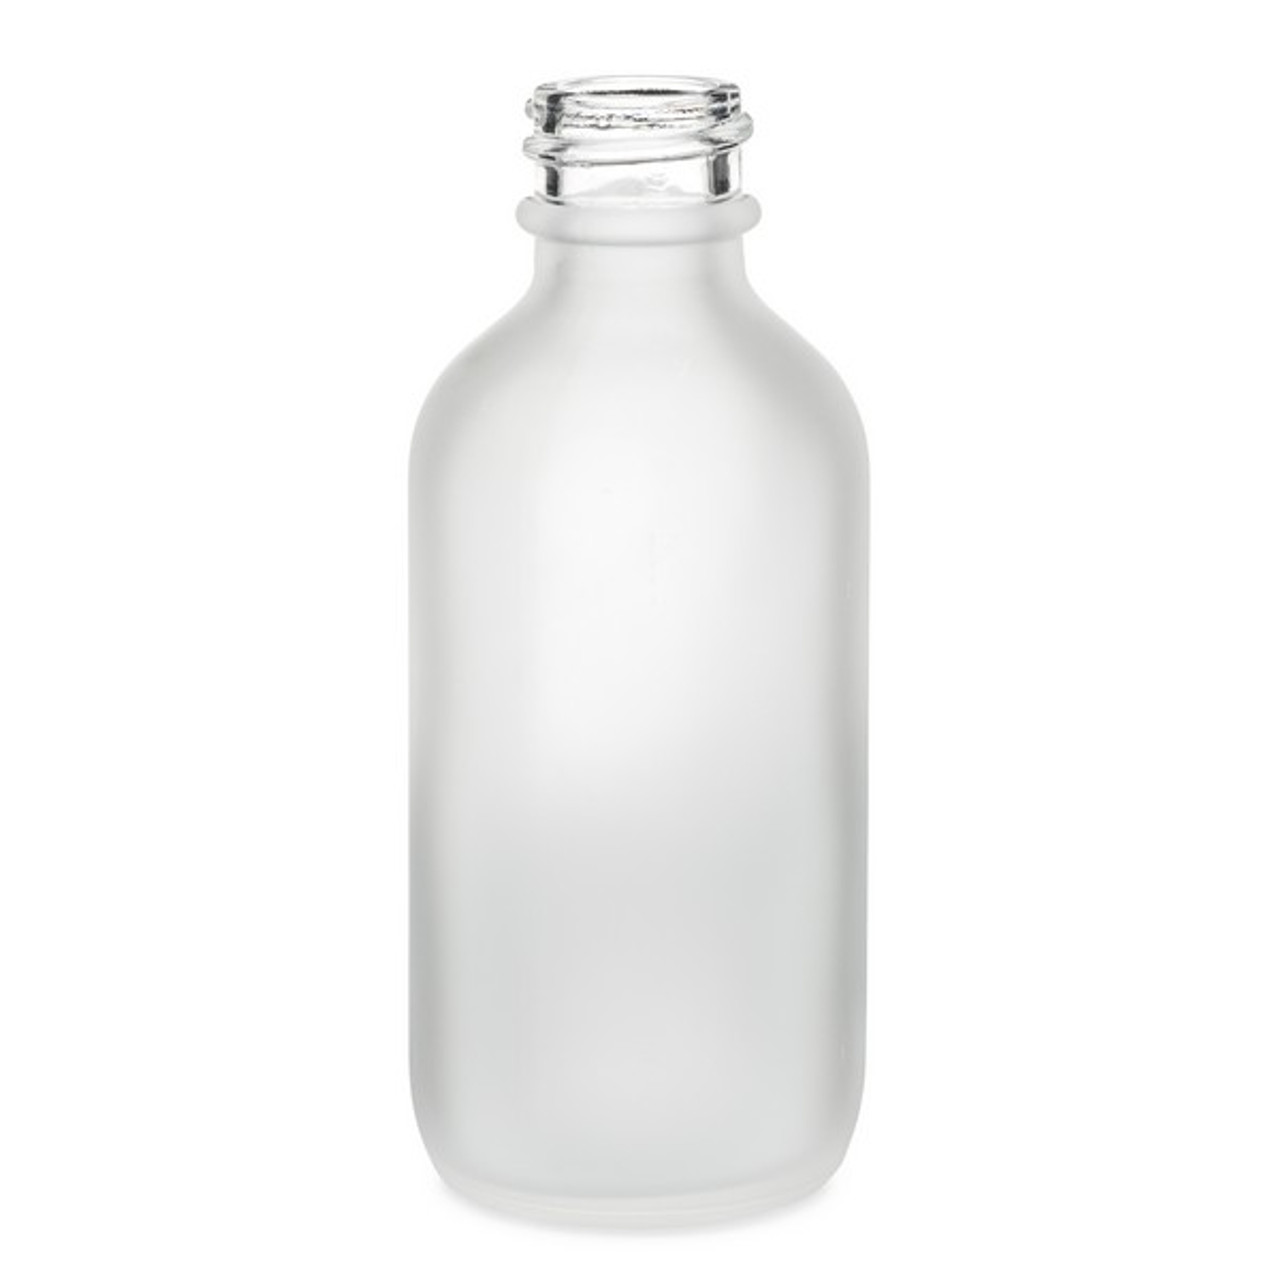 4d7ba4ca215c 2 oz Frosted Glass Boston Round Bottle (Cap Not Included) - 4700B05-BCLR